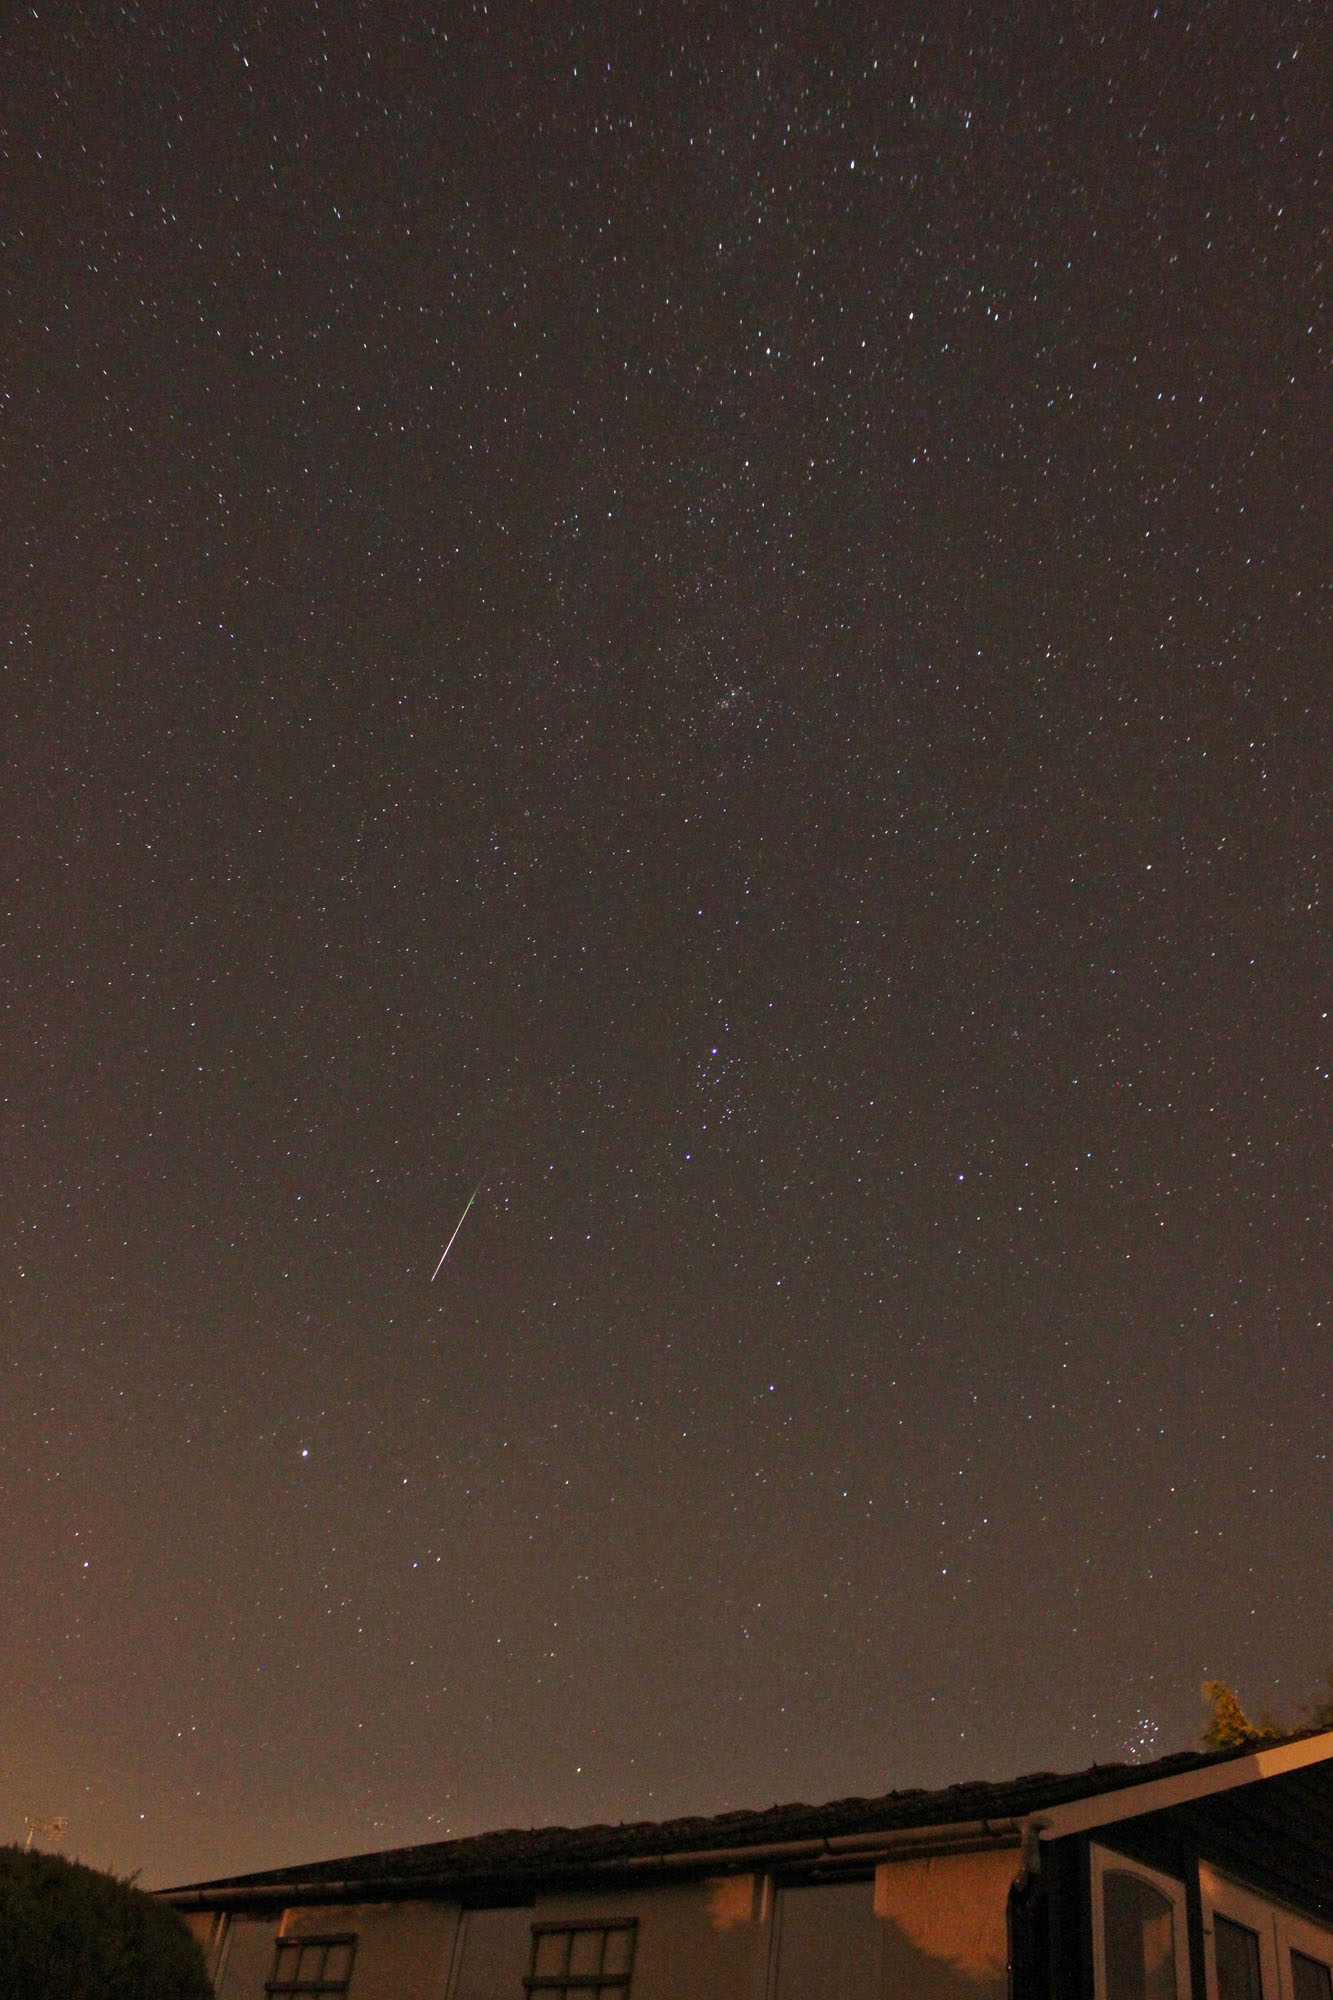 Perseids 2015: 'It was amazing.'